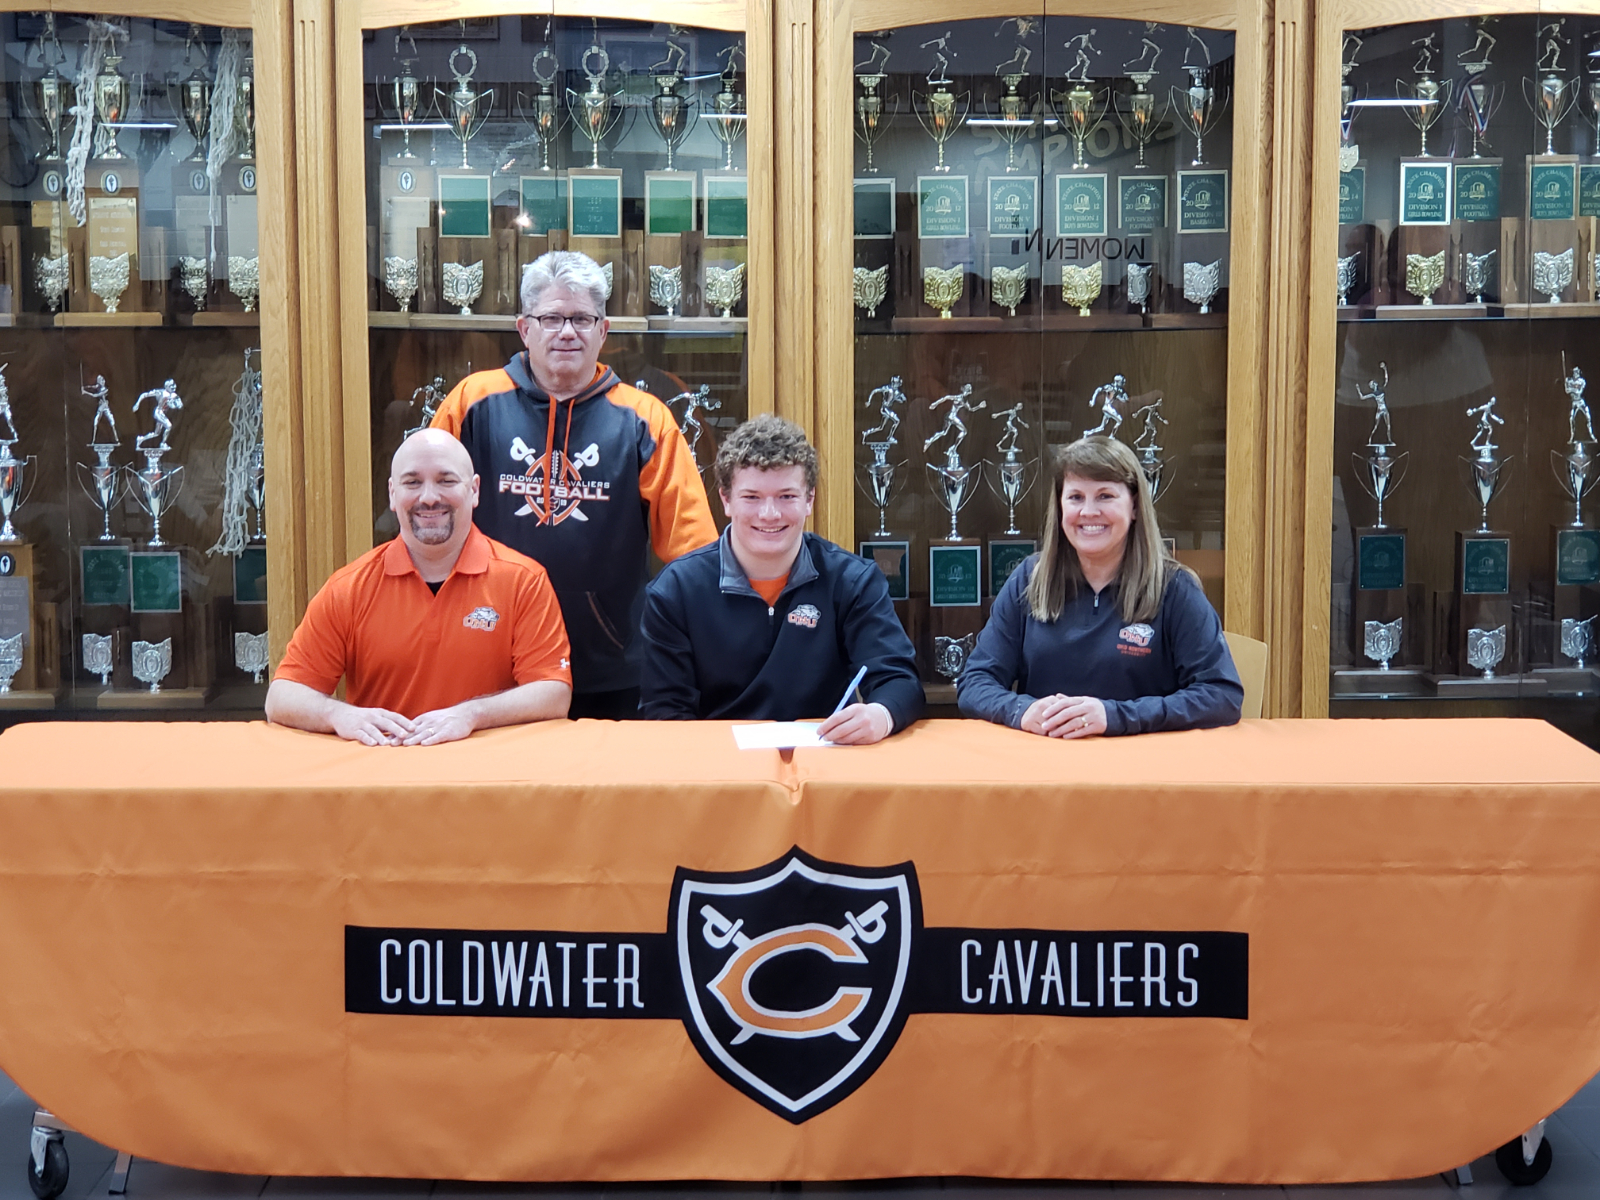 Coldwater senior Josh Hrycko to continue his career at Ohio Northern University